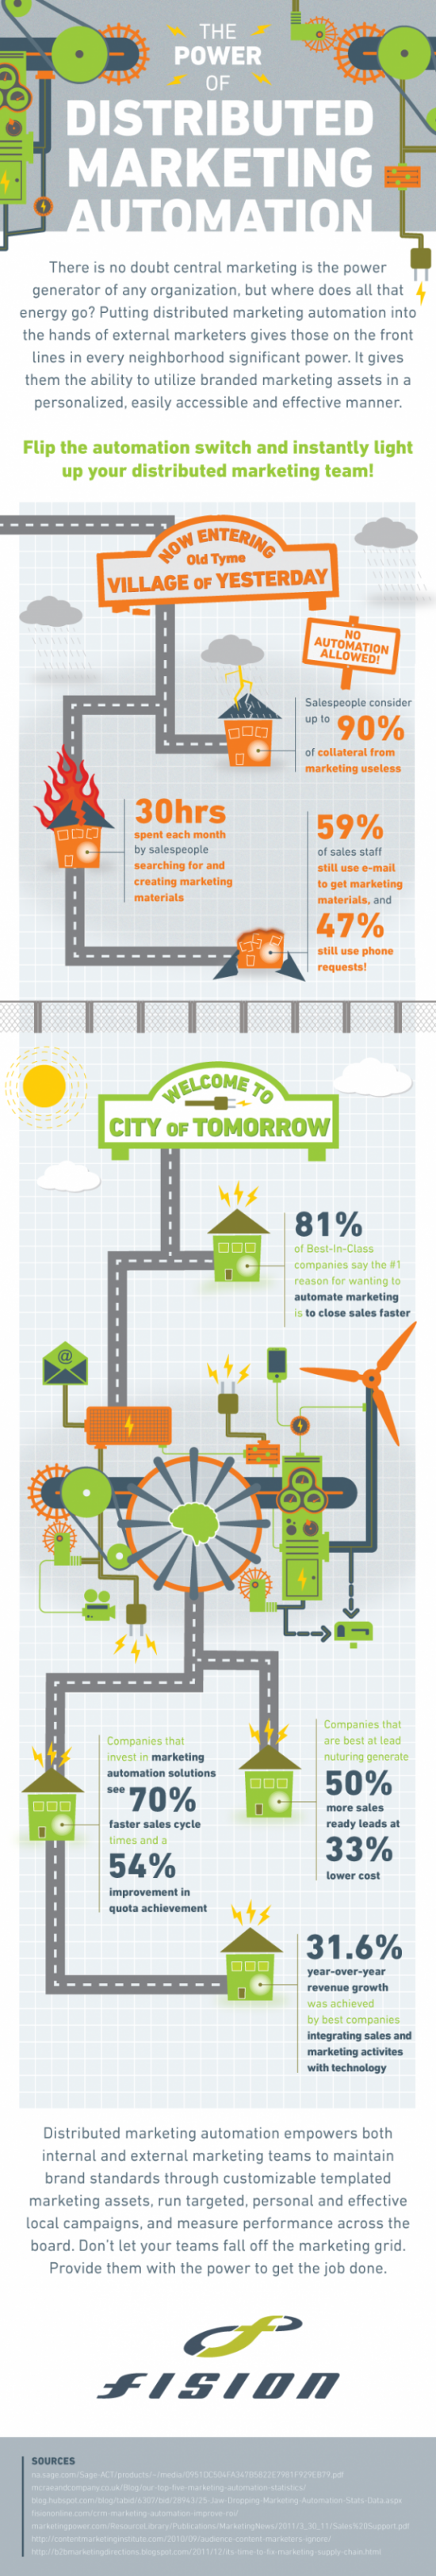 Fision Distributed Marketing Automation Infographic - Powering Sales Teams of Tomorrow